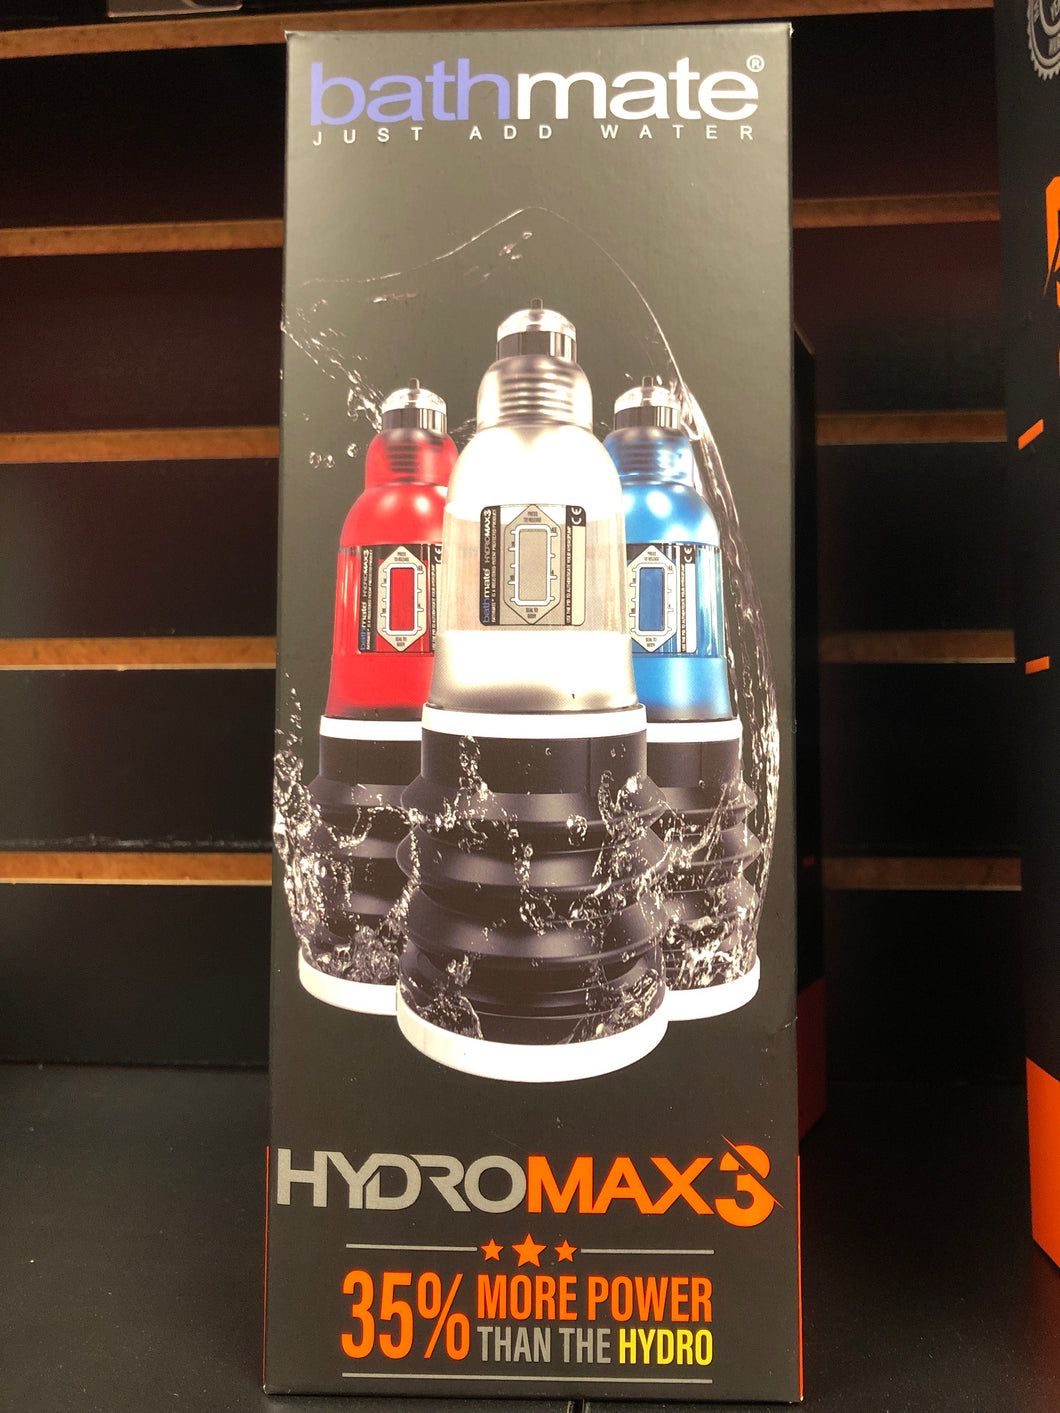 BATHMATE HYDROMAX3 CLEAR